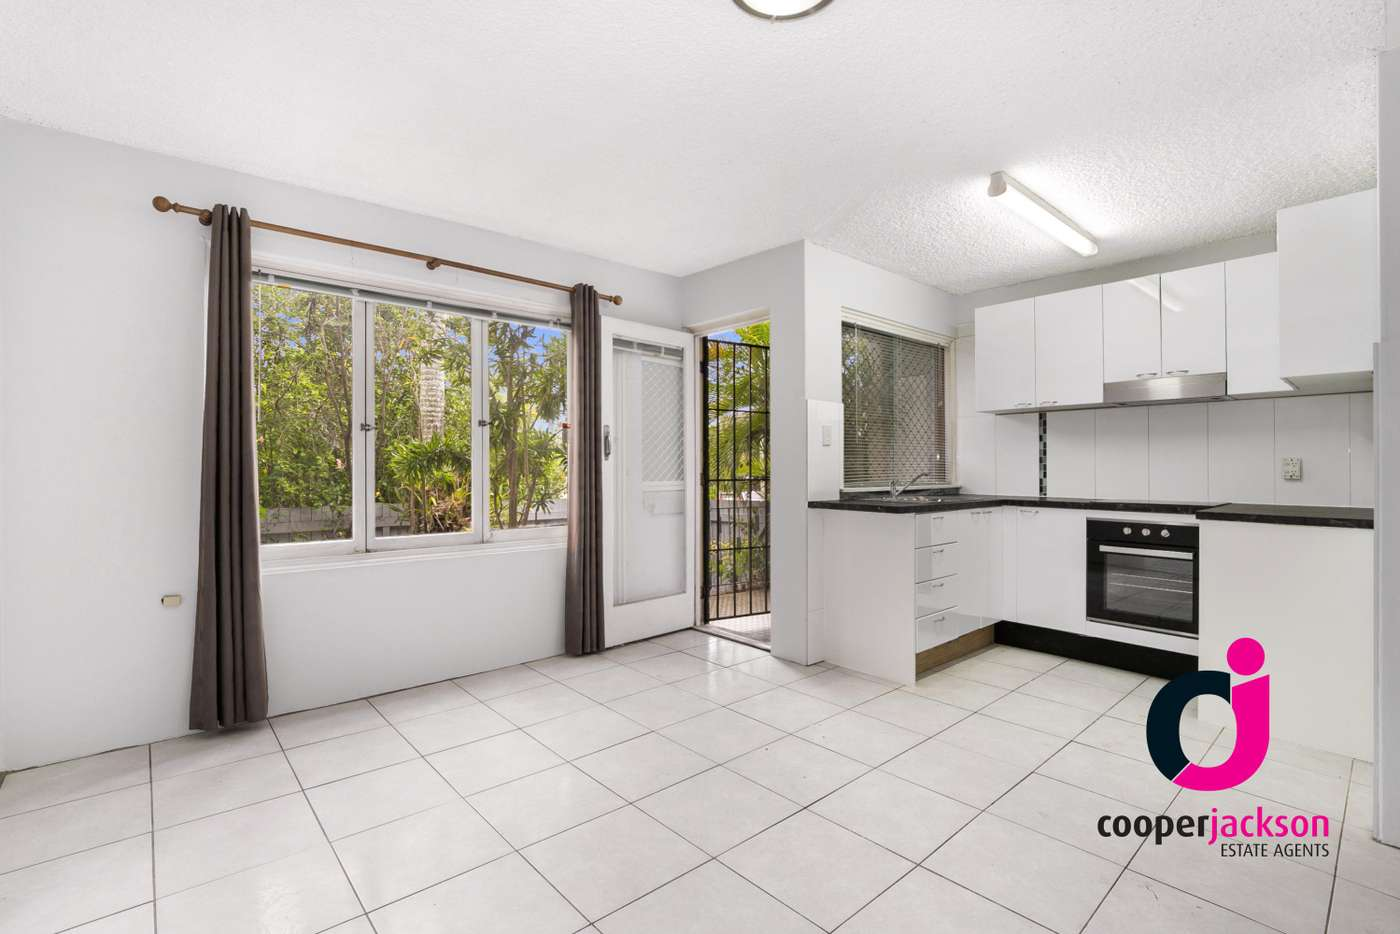 Main view of Homely apartment listing, 587 SANDGATE ROAD, Clayfield QLD 4011